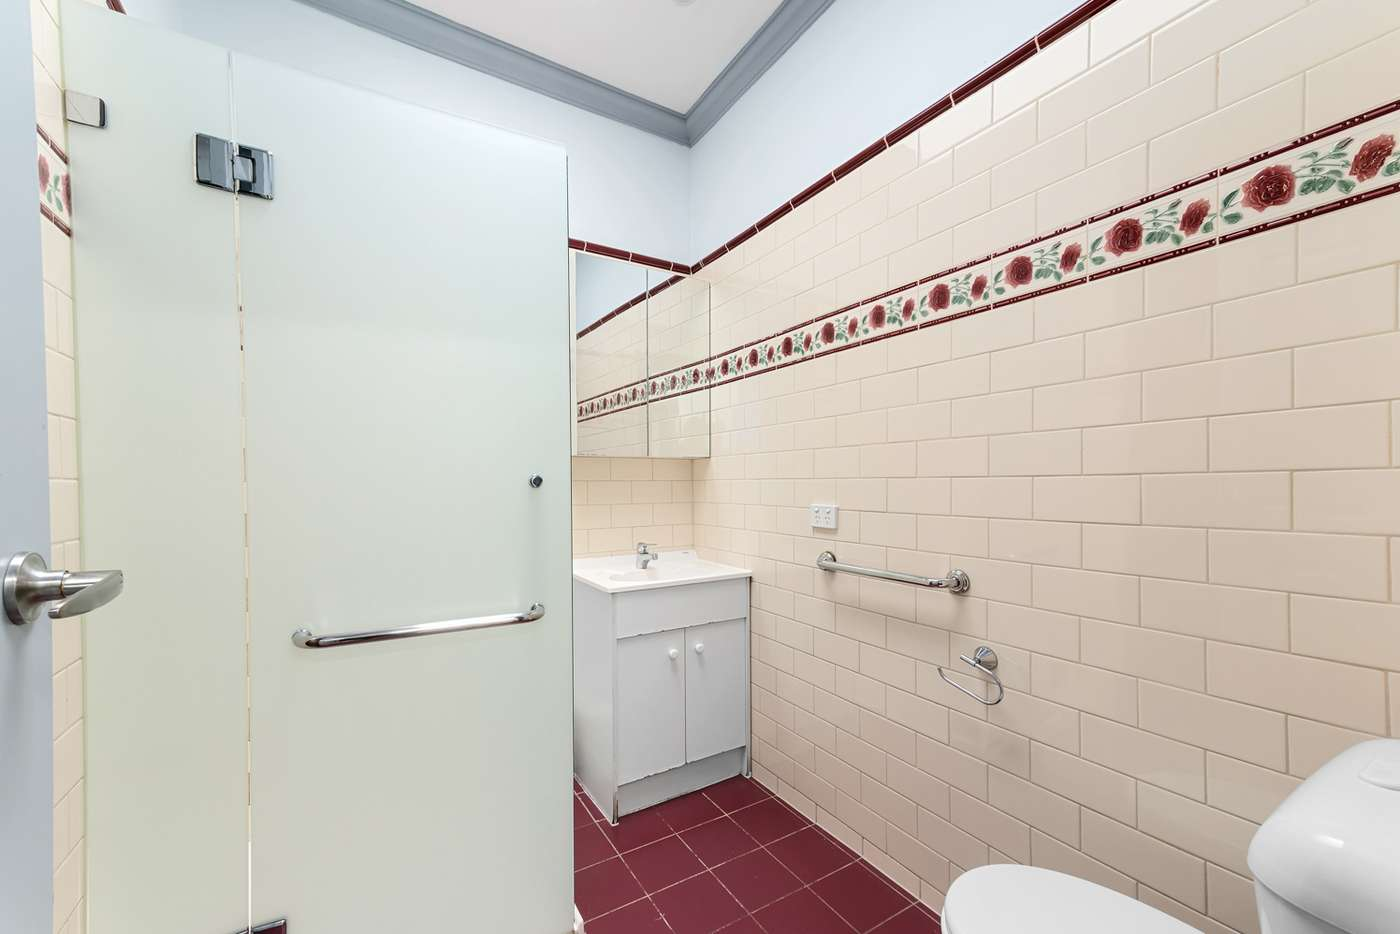 Seventh view of Homely house listing, 143 Peel Street, North Melbourne VIC 3051